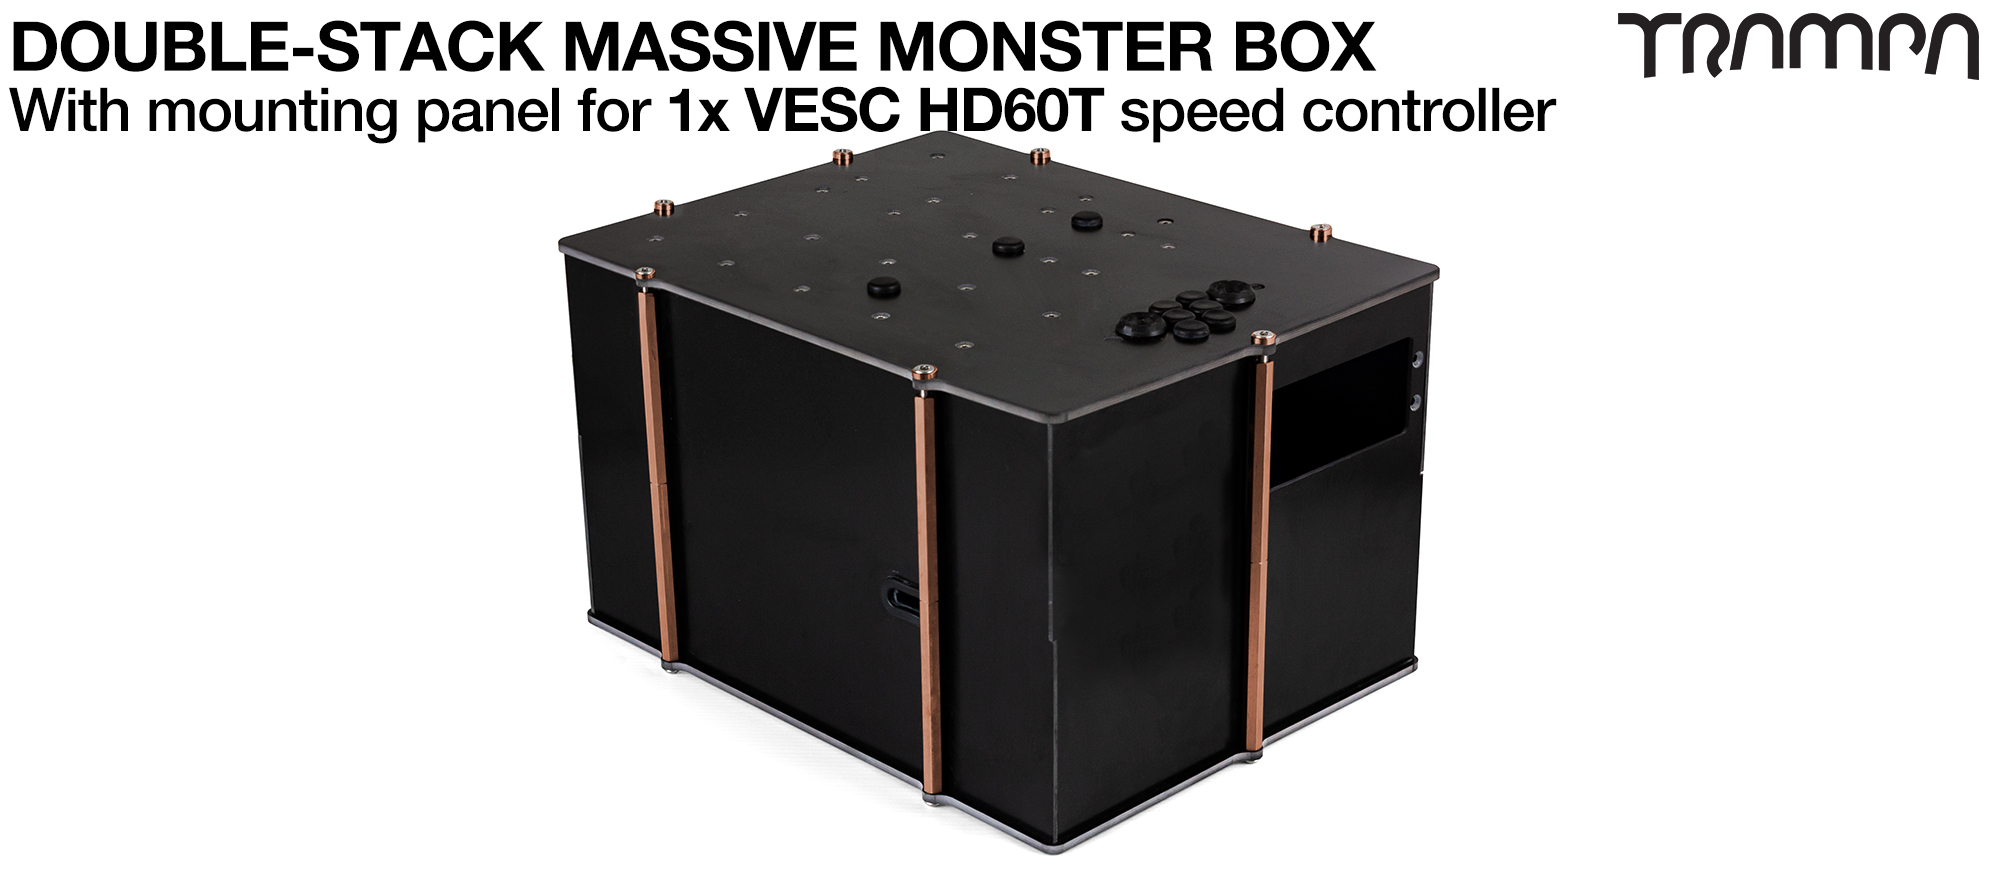 2WD DOUBLE STACK MASSIVE MONSTER Box with 1x VESC HD-60Twin Mounting Panel